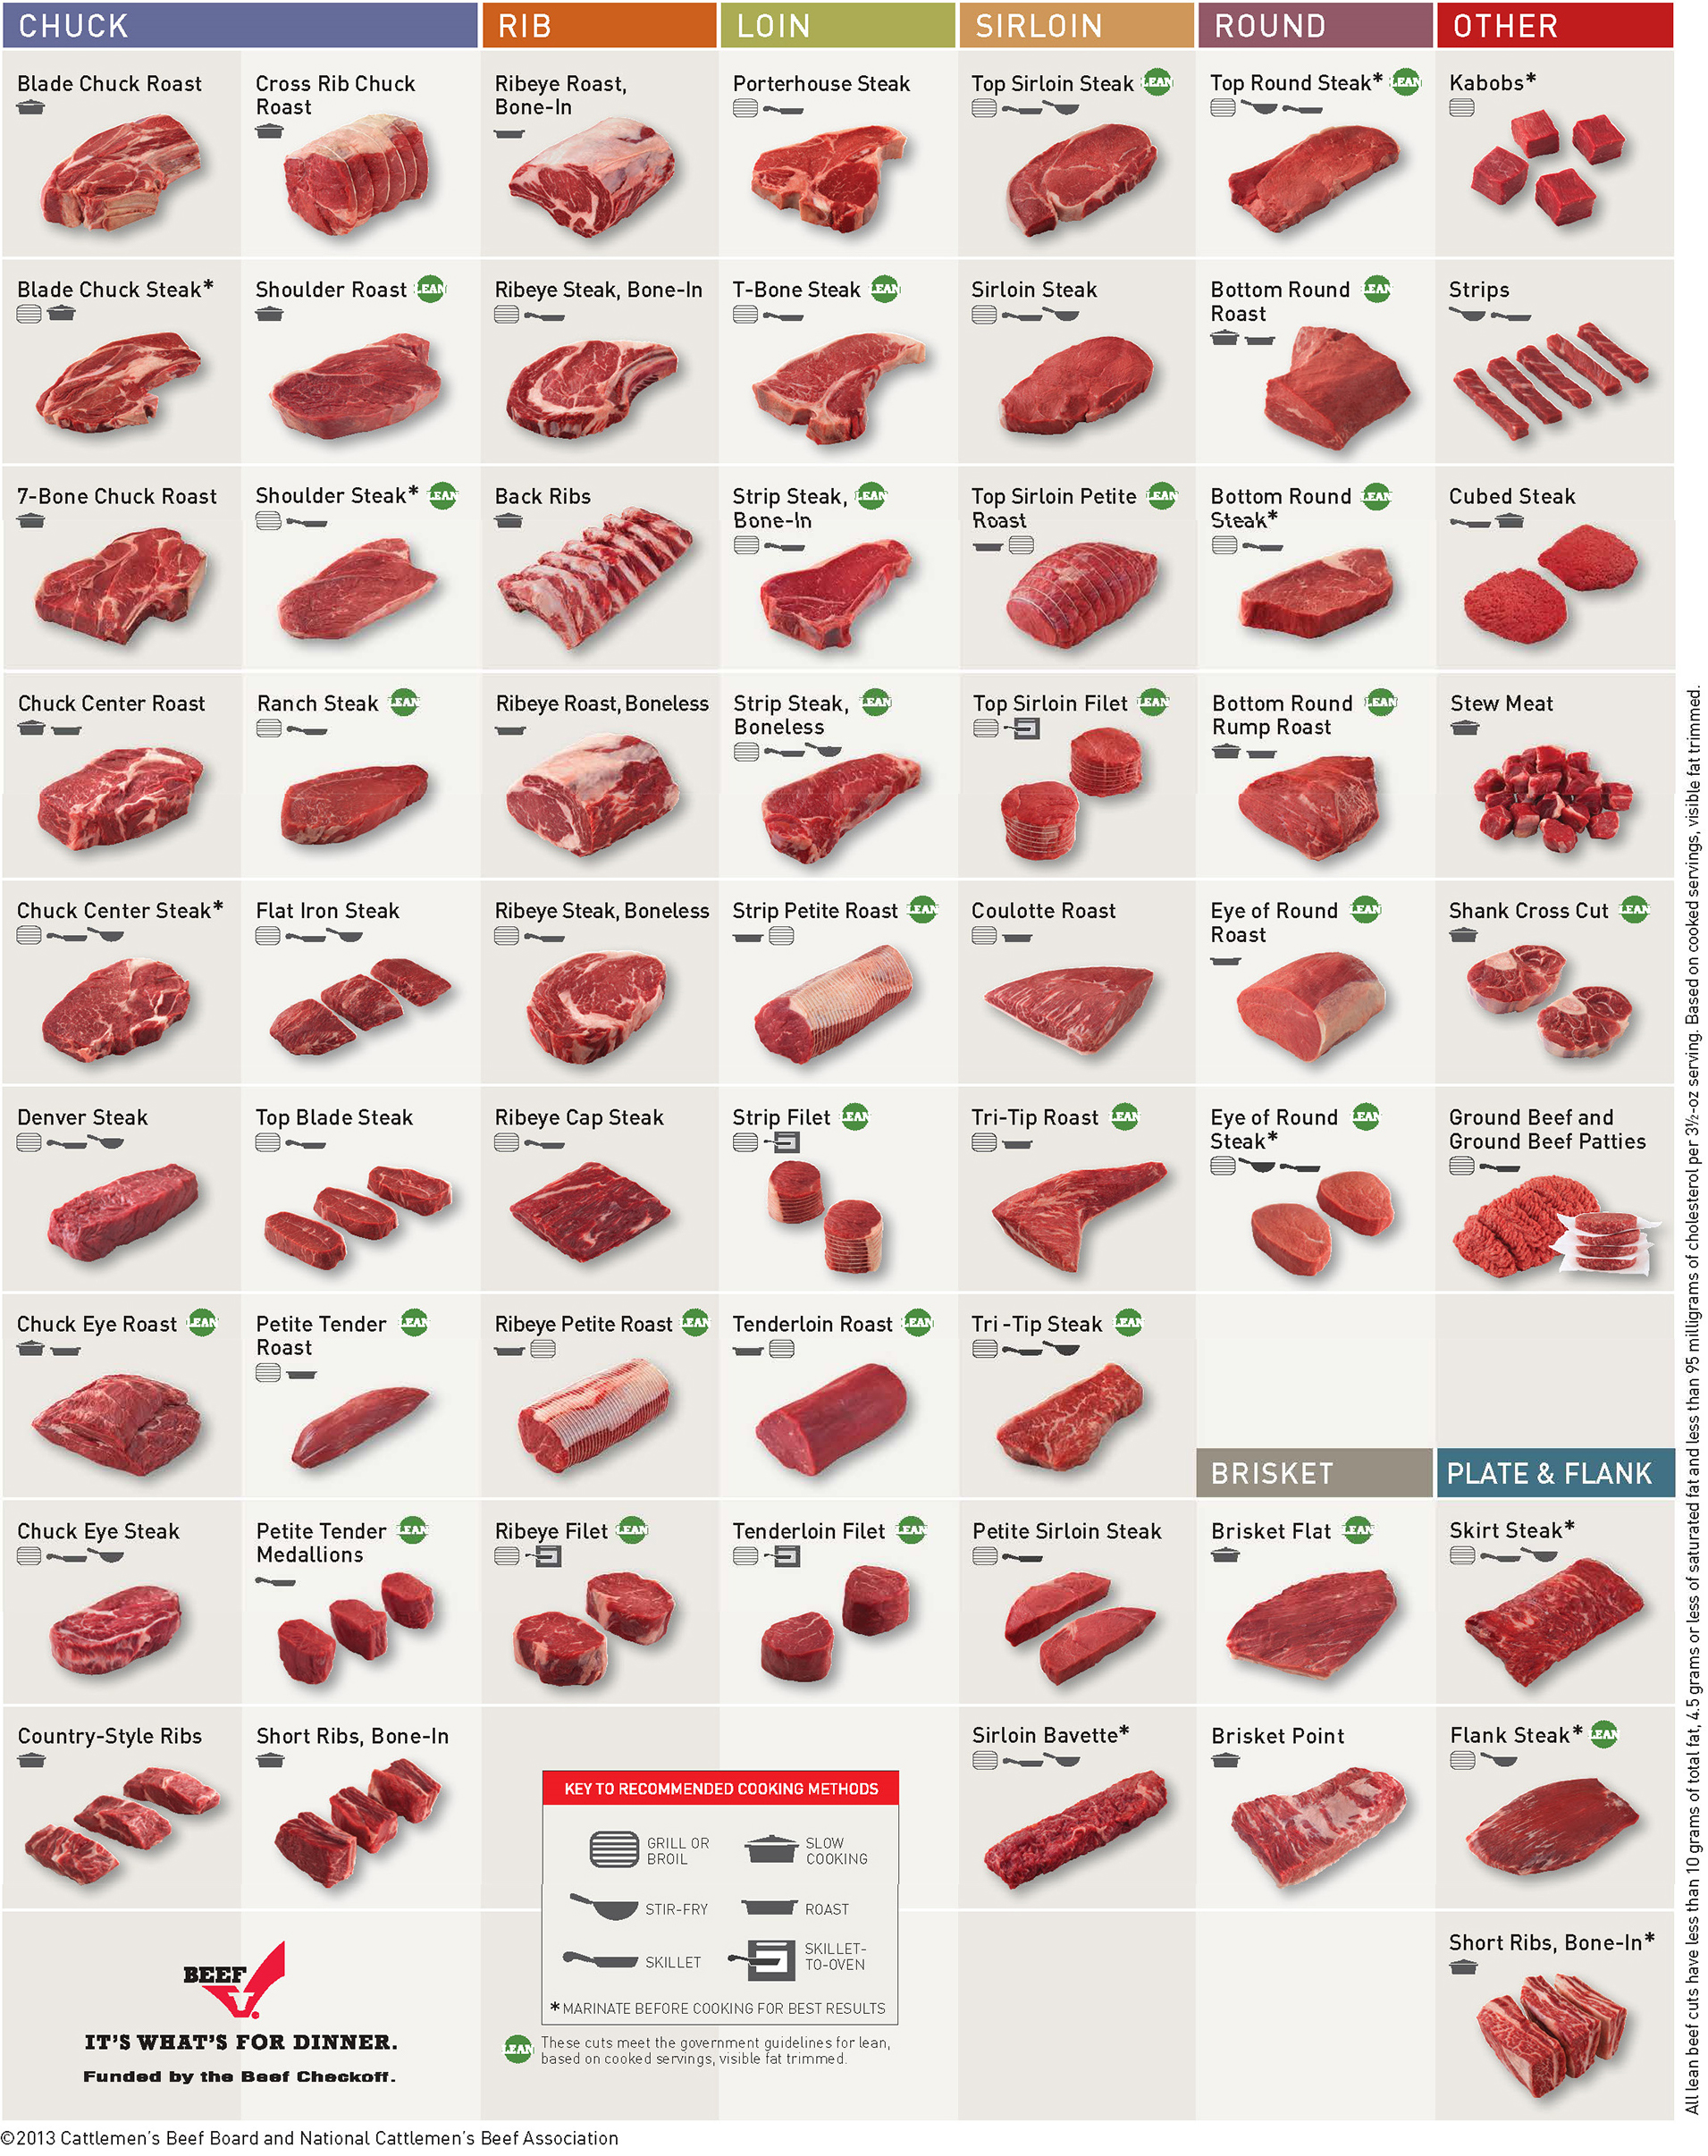 images of different types of beef cuts